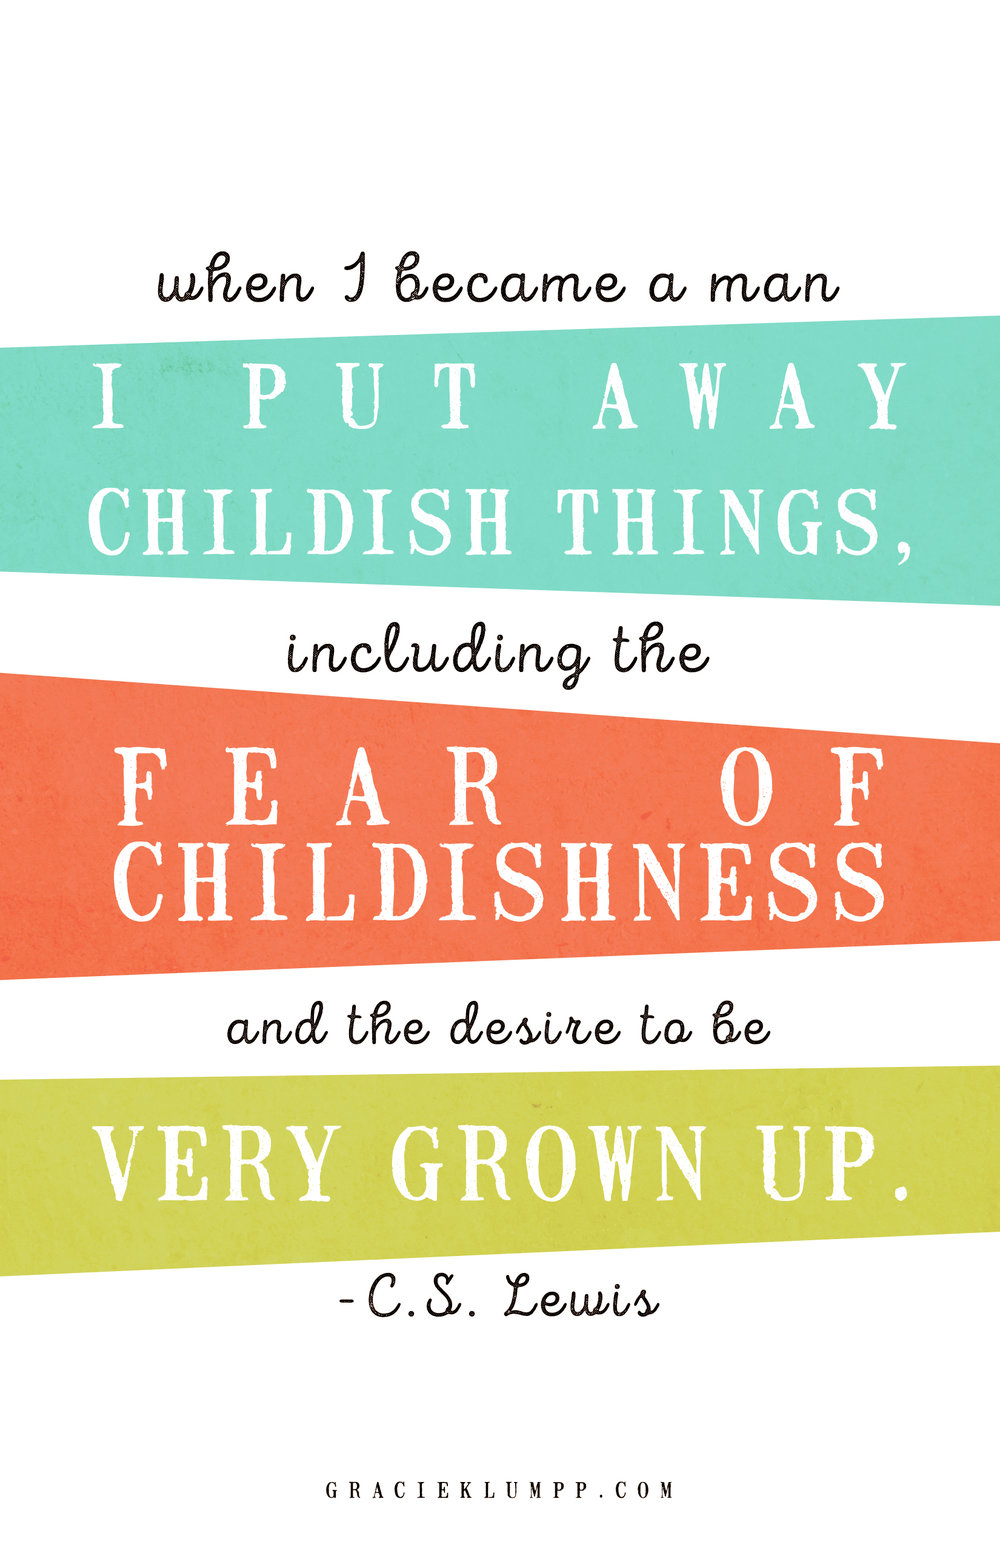 Fear of Being Childish C.S. Lewis Quote